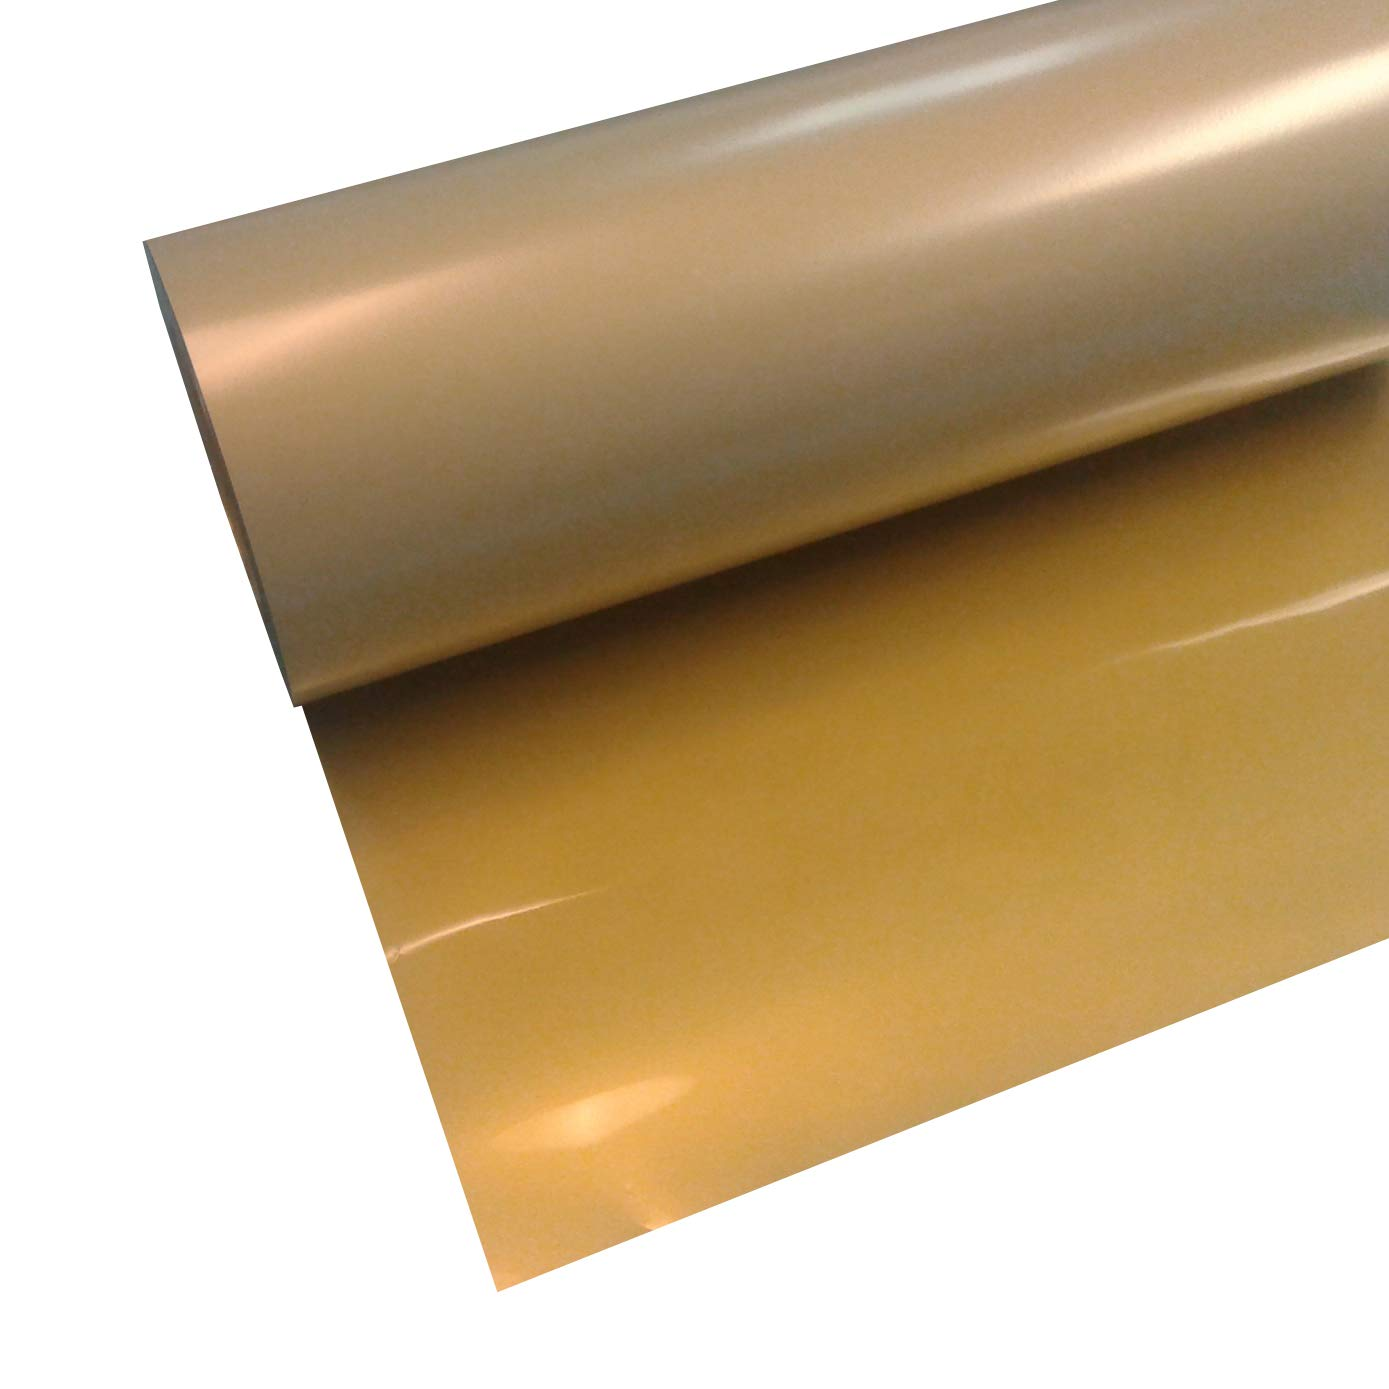 Siser Easyweed Stretch Gold 15'' x 10' Iron on Heat Transfer Vinyl Roll Coaches World